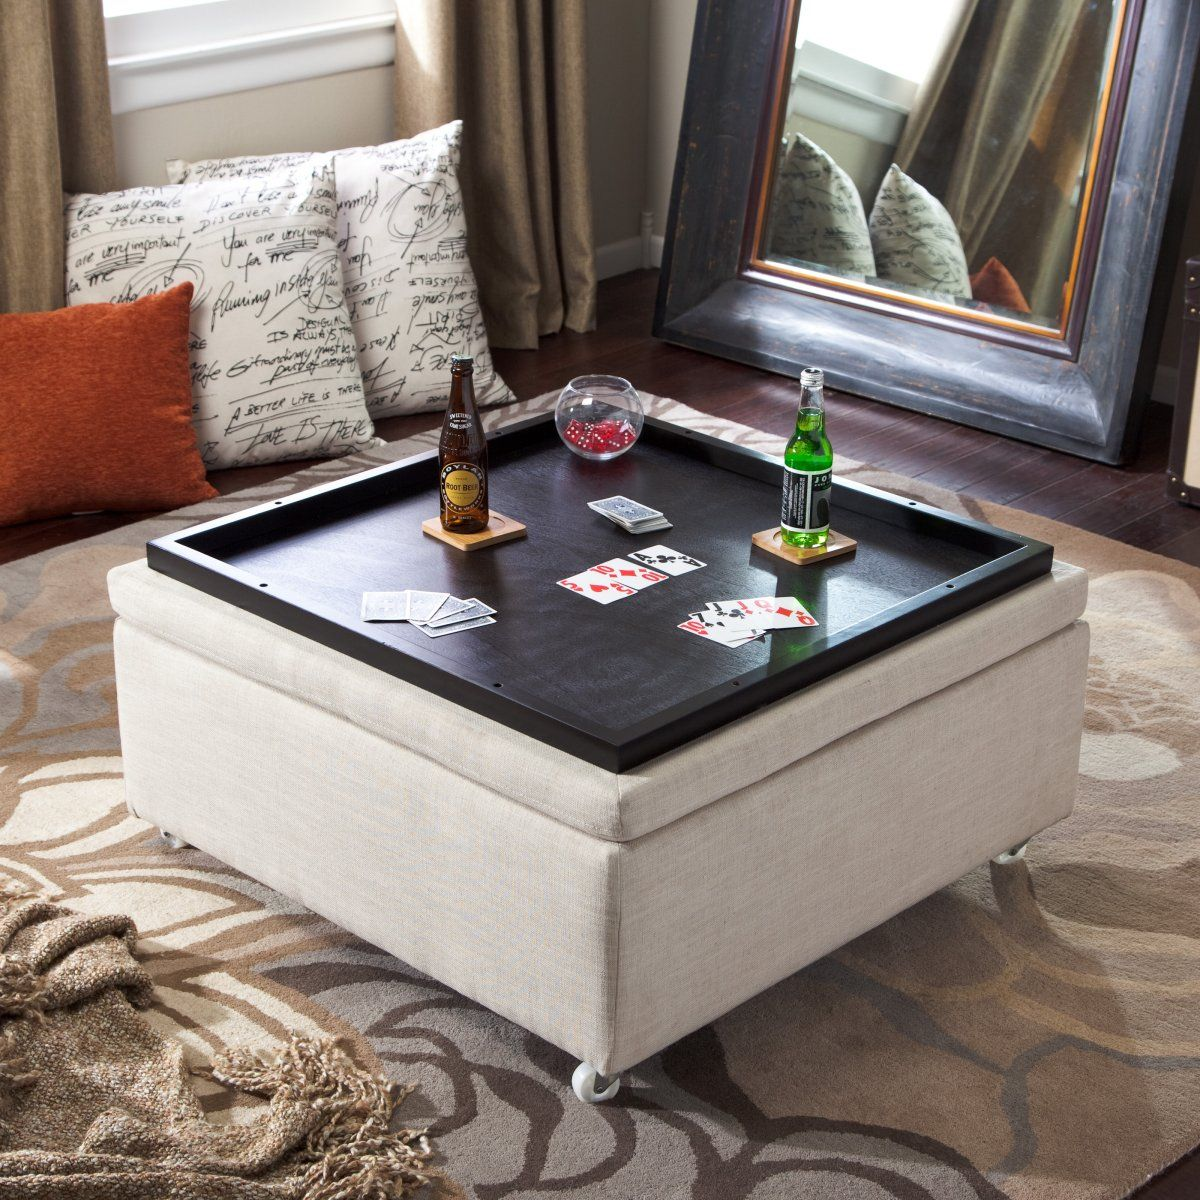 Attirant Corbett Linen Coffee Table Storage Ottoman   Storage Ottomans At  Hayneedle.com